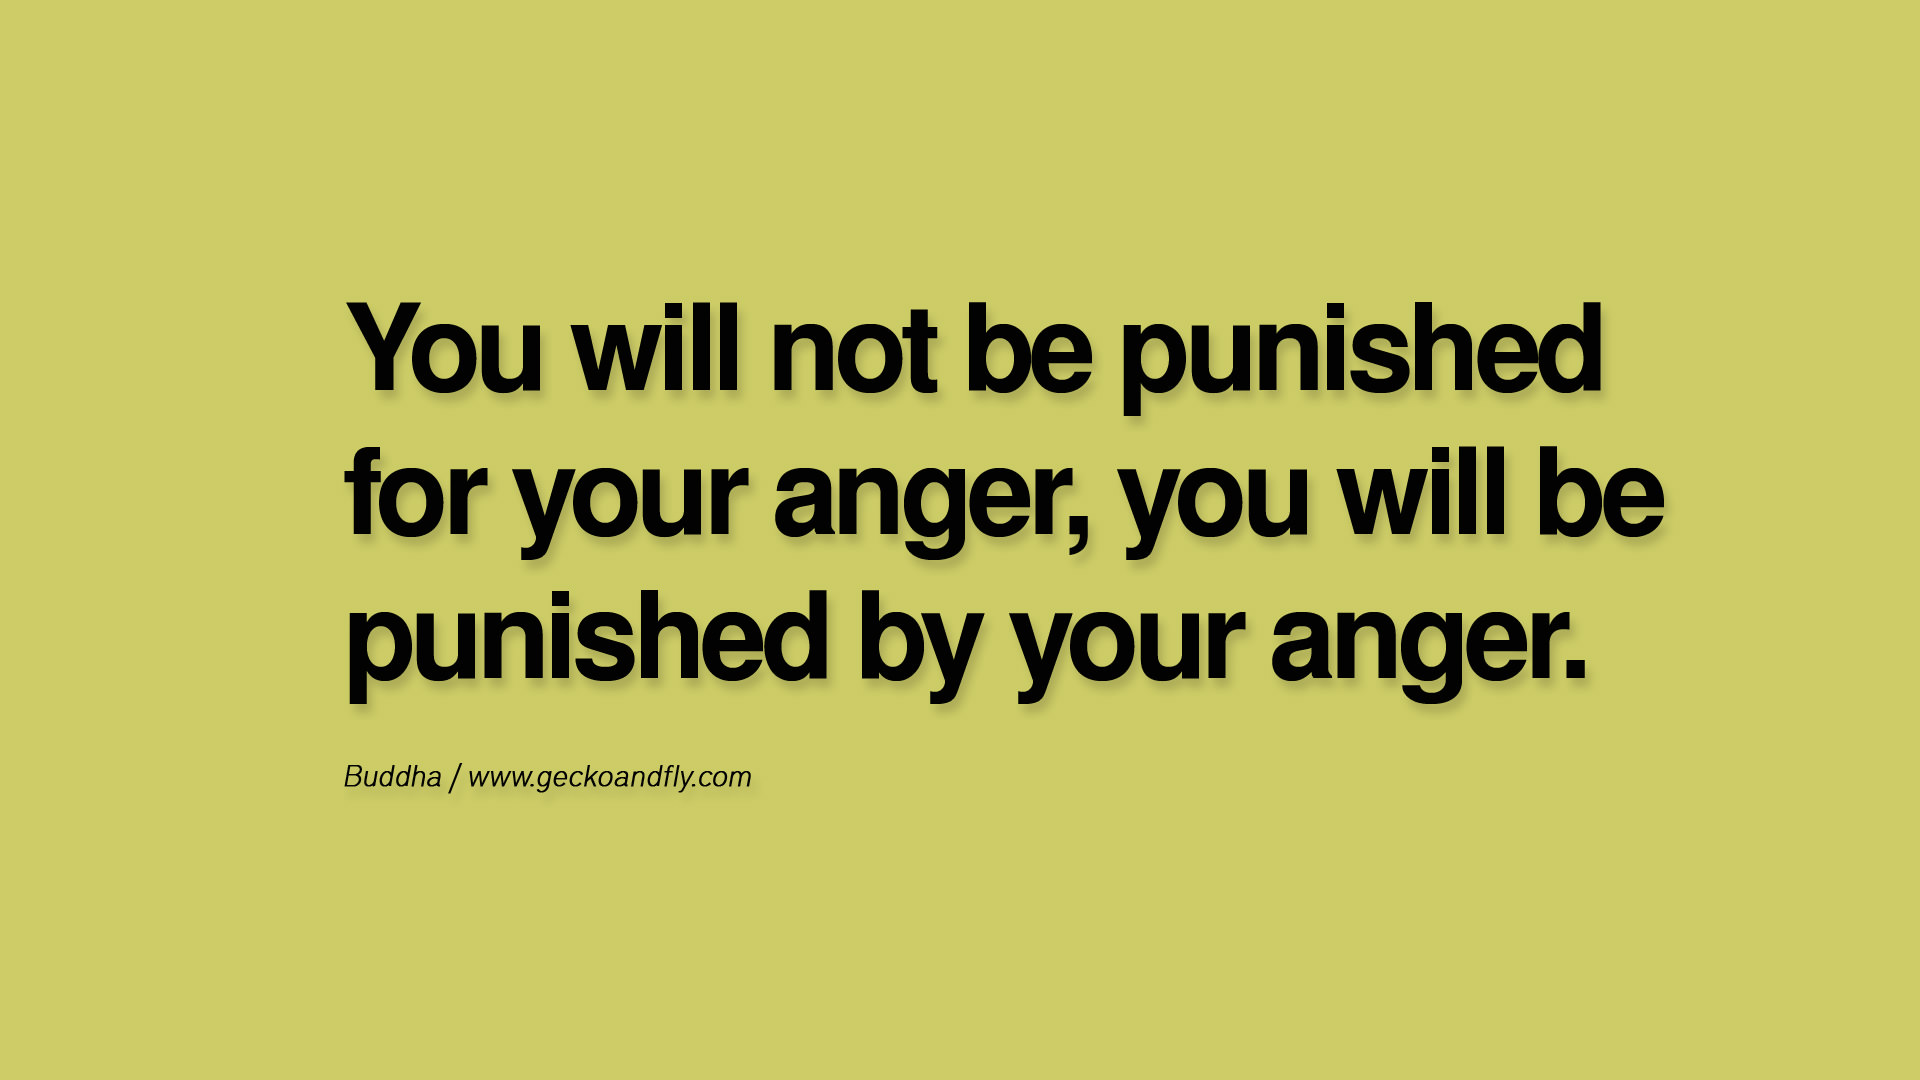 Quotes And Pics Of People With Anger: Anger Management Movie Quotes. QuotesGram